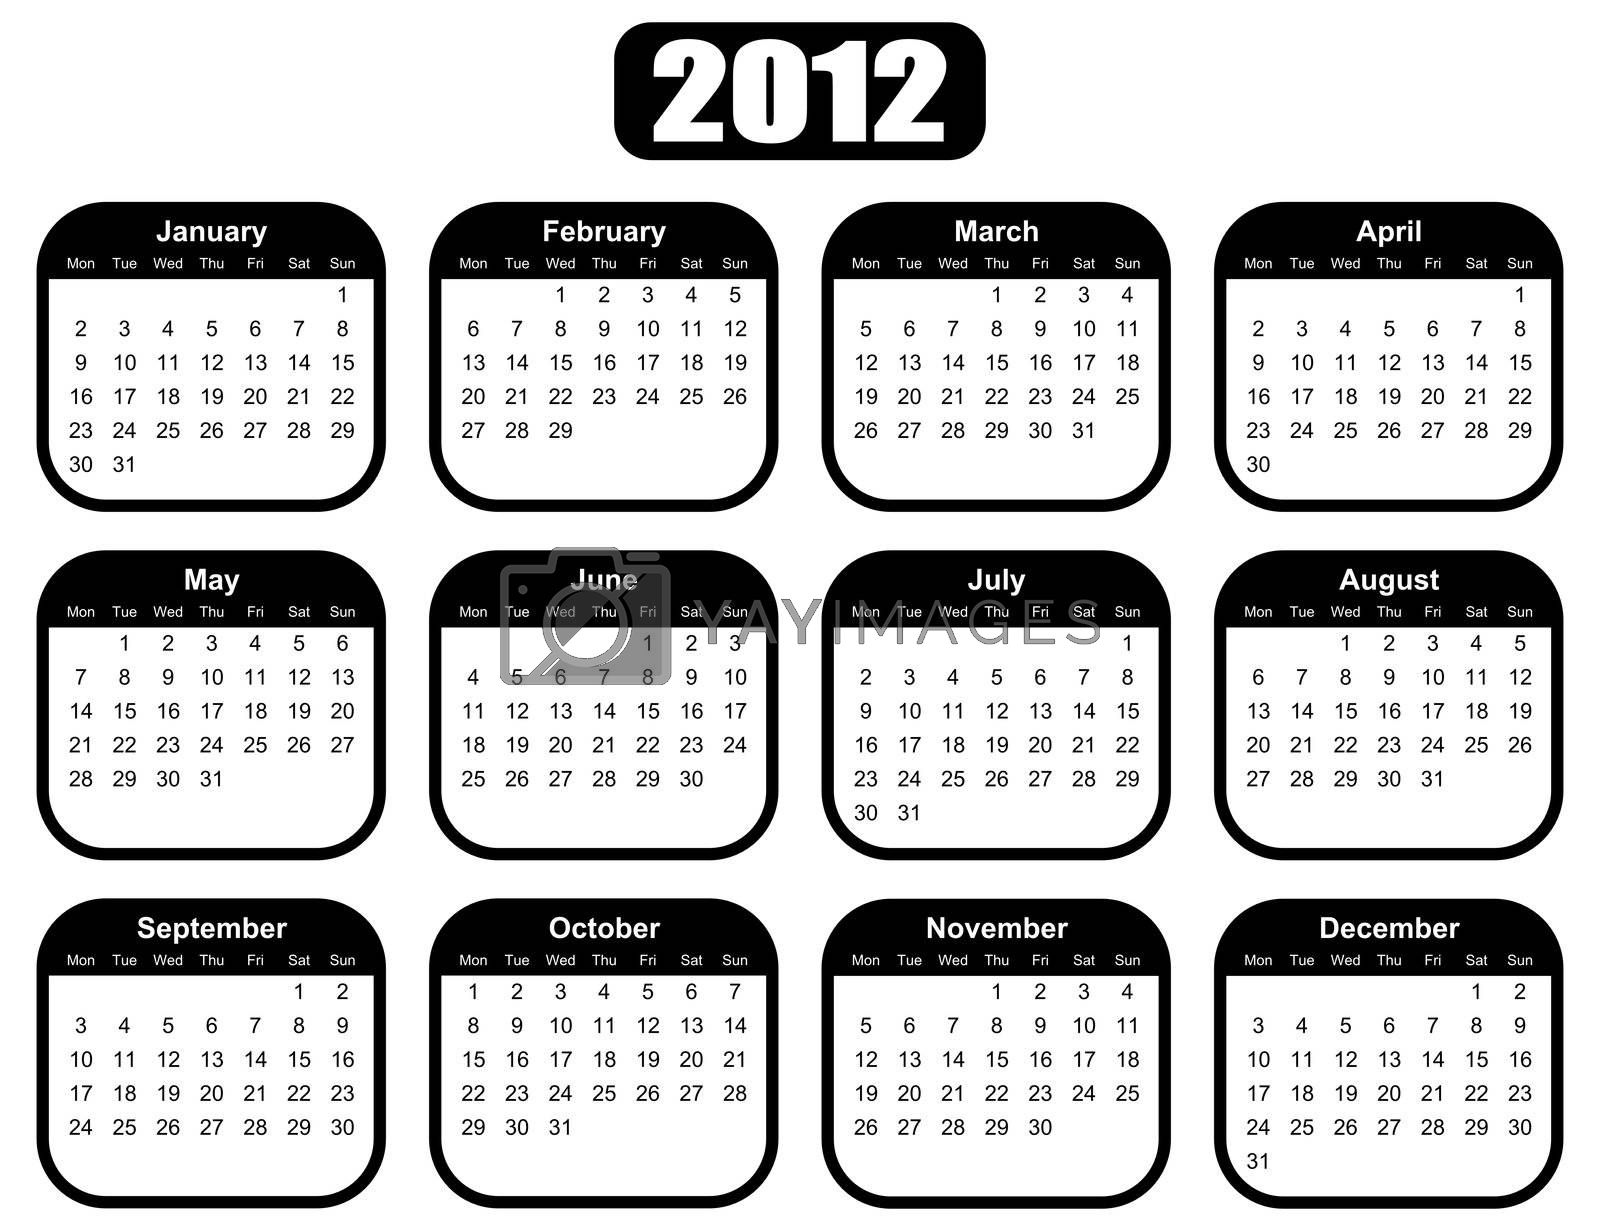 calendar for 2012 year with black boxes